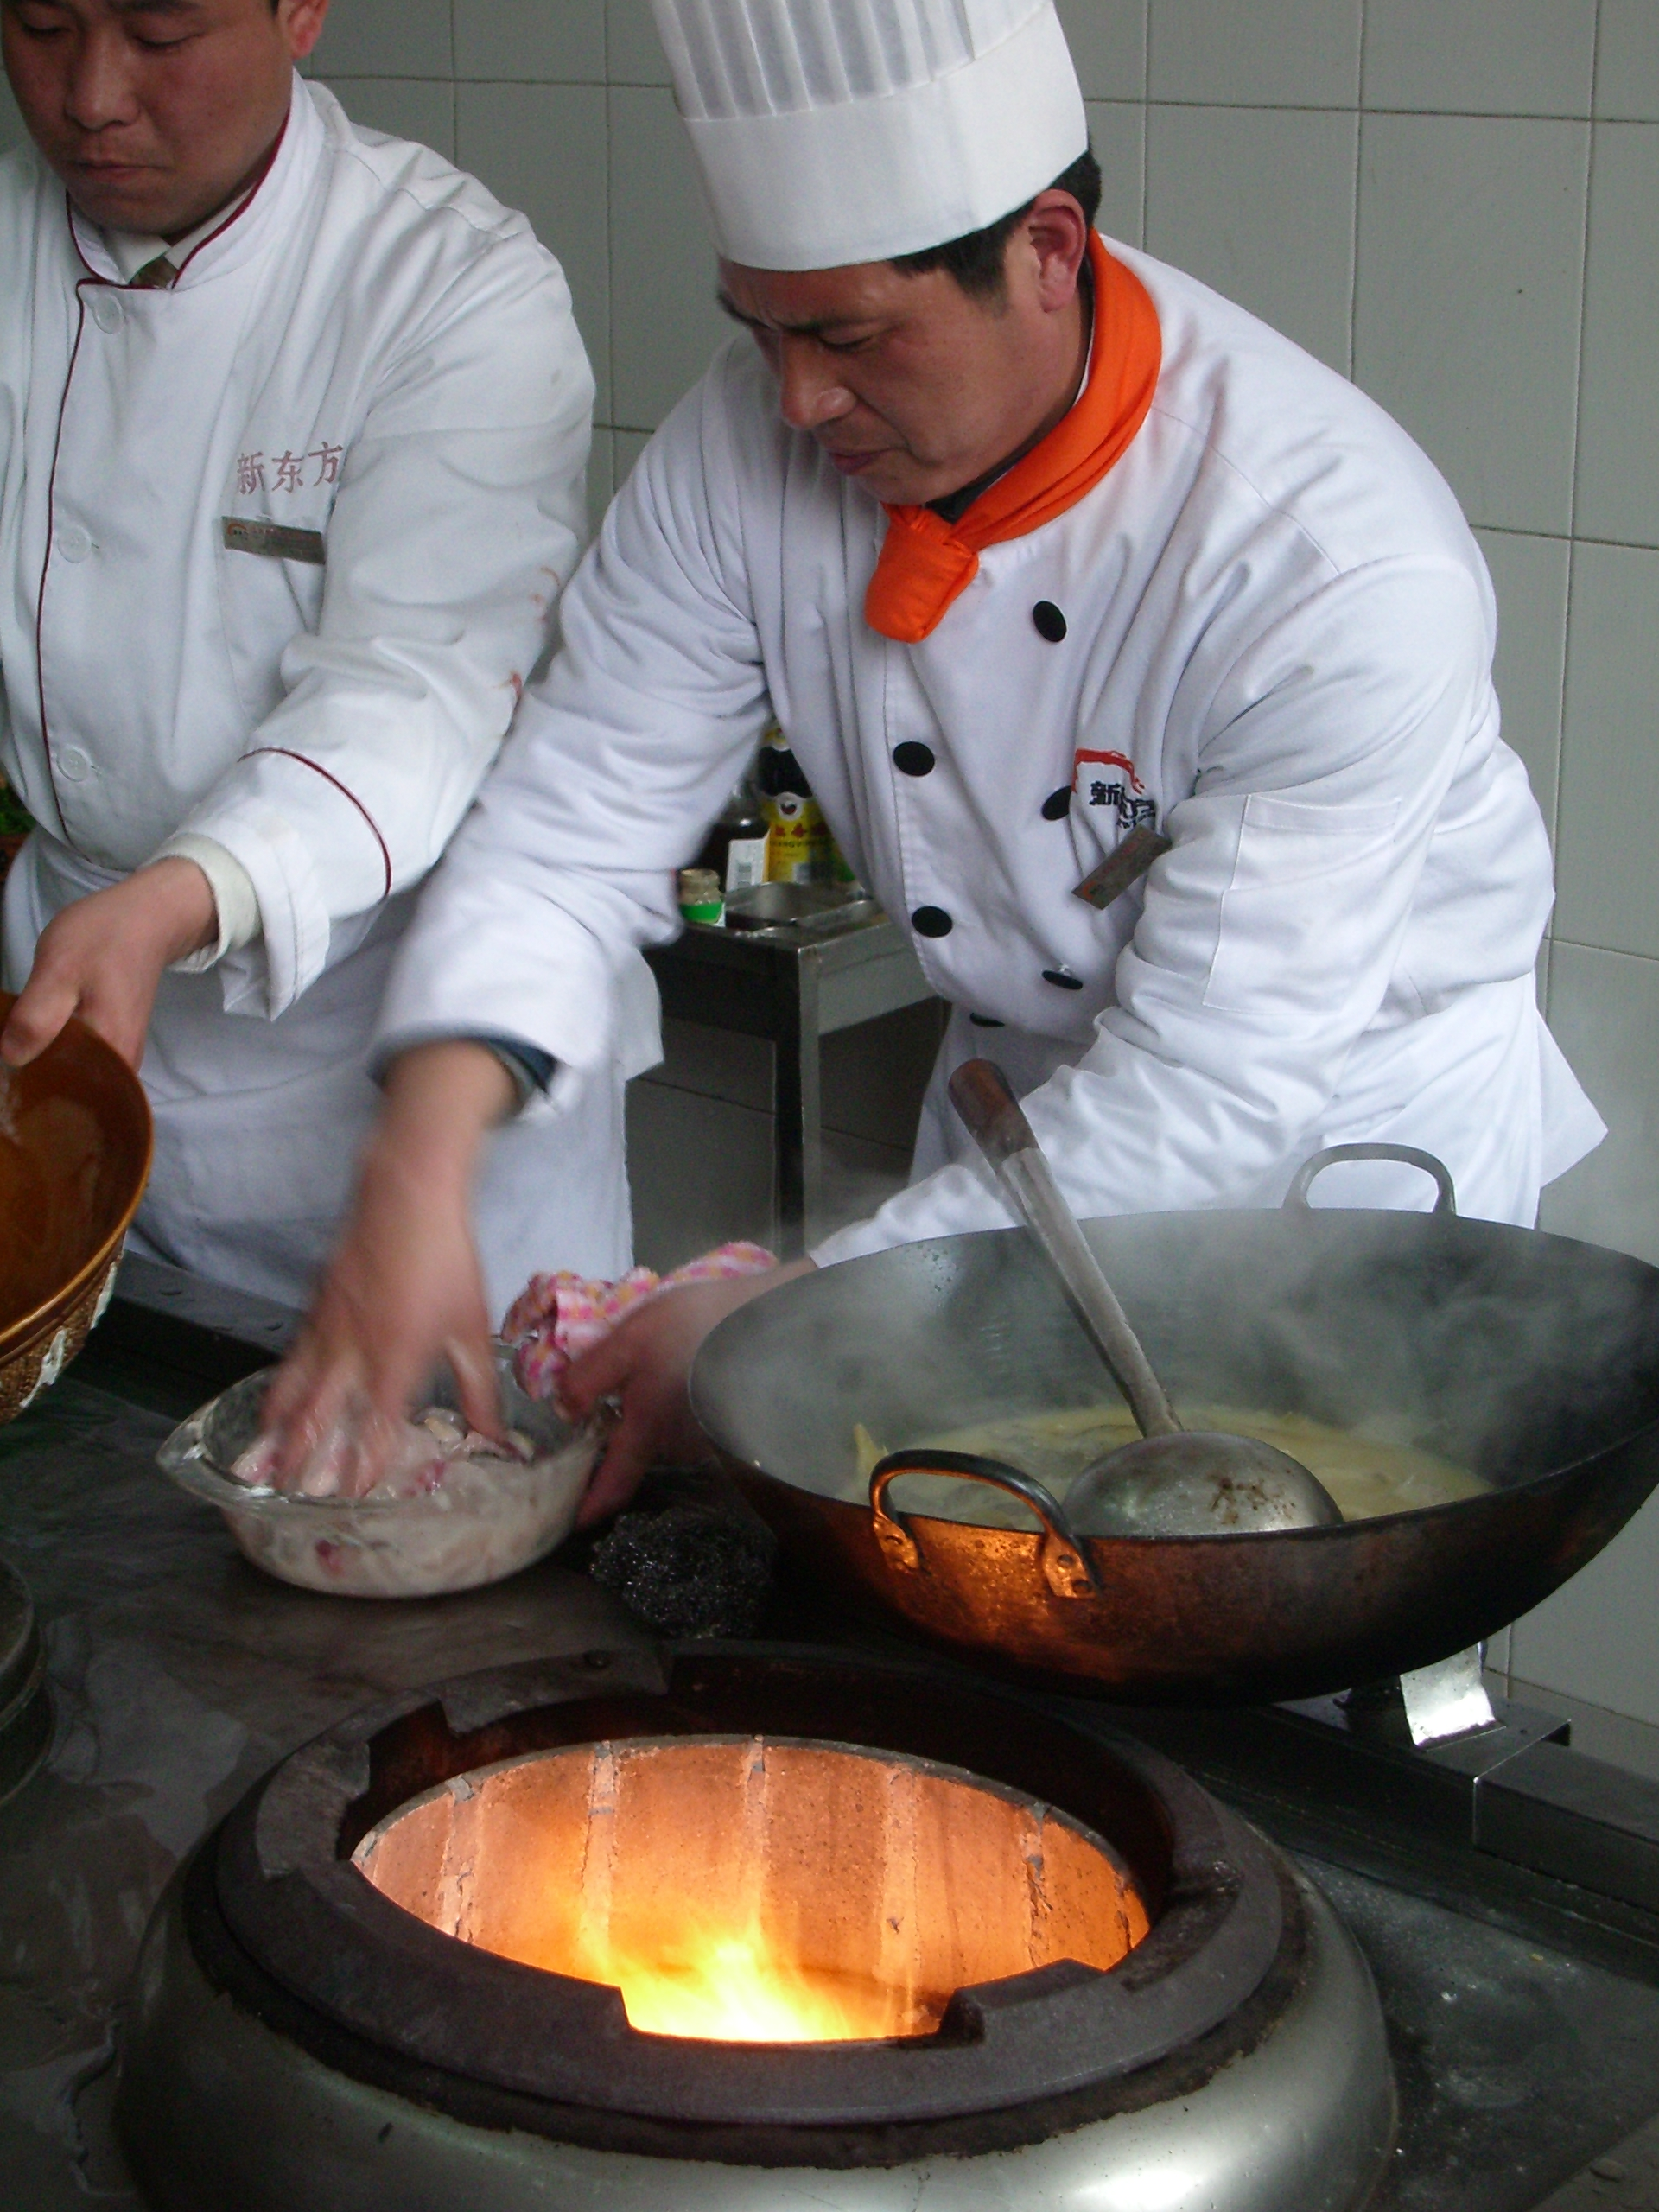 Chefs cooking with a wok